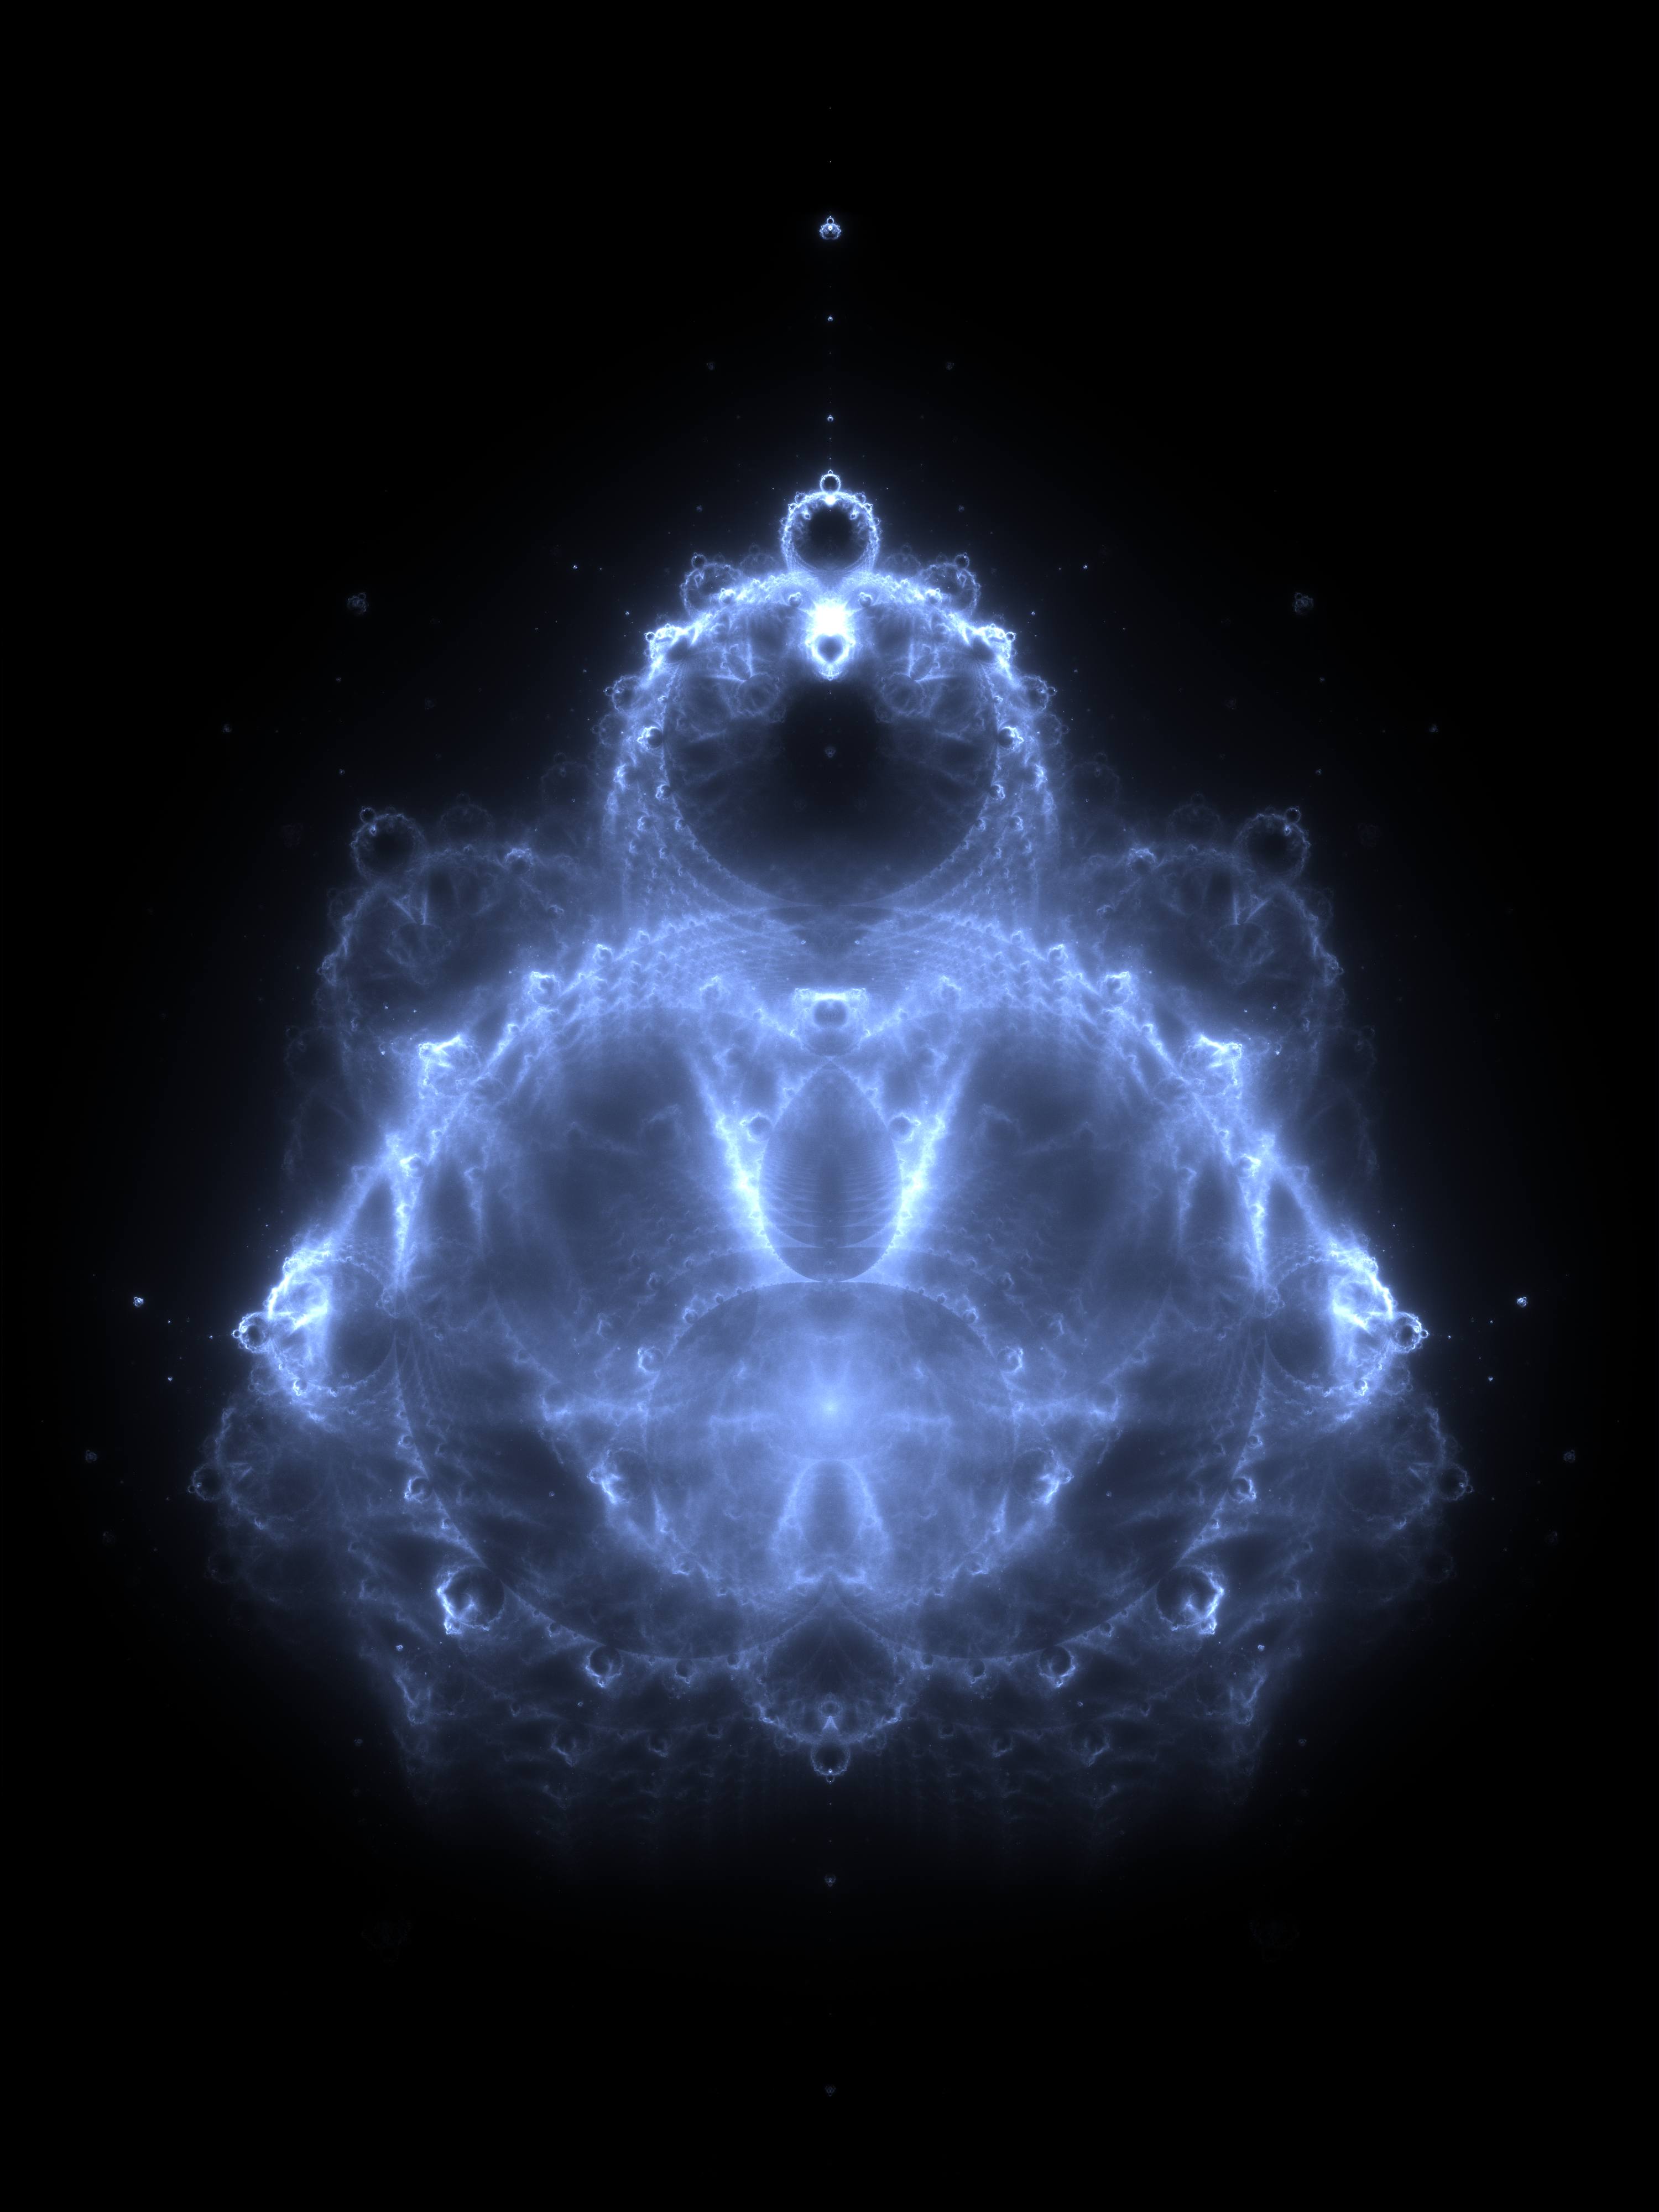 The Buddhabrot Fractal, Mandelbrot Set, and The Logistic Map